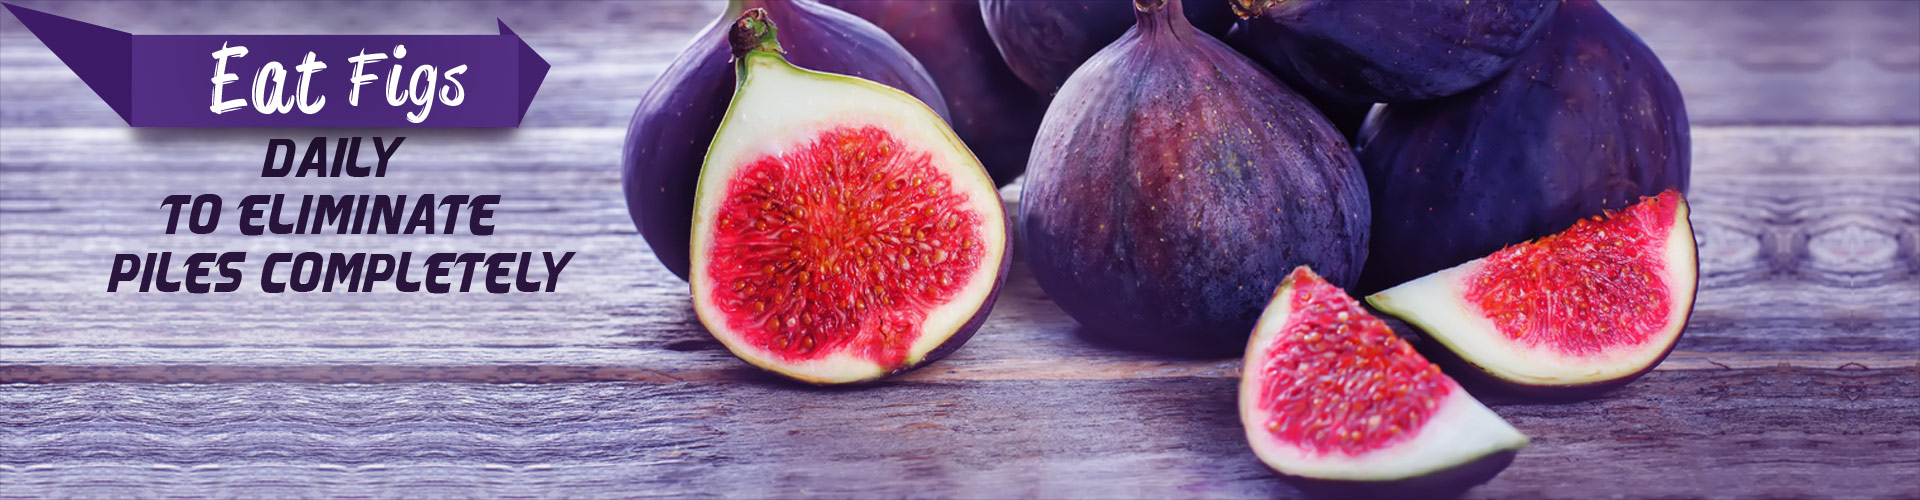 Eat Figs Daily to Eliminate Piles Completely